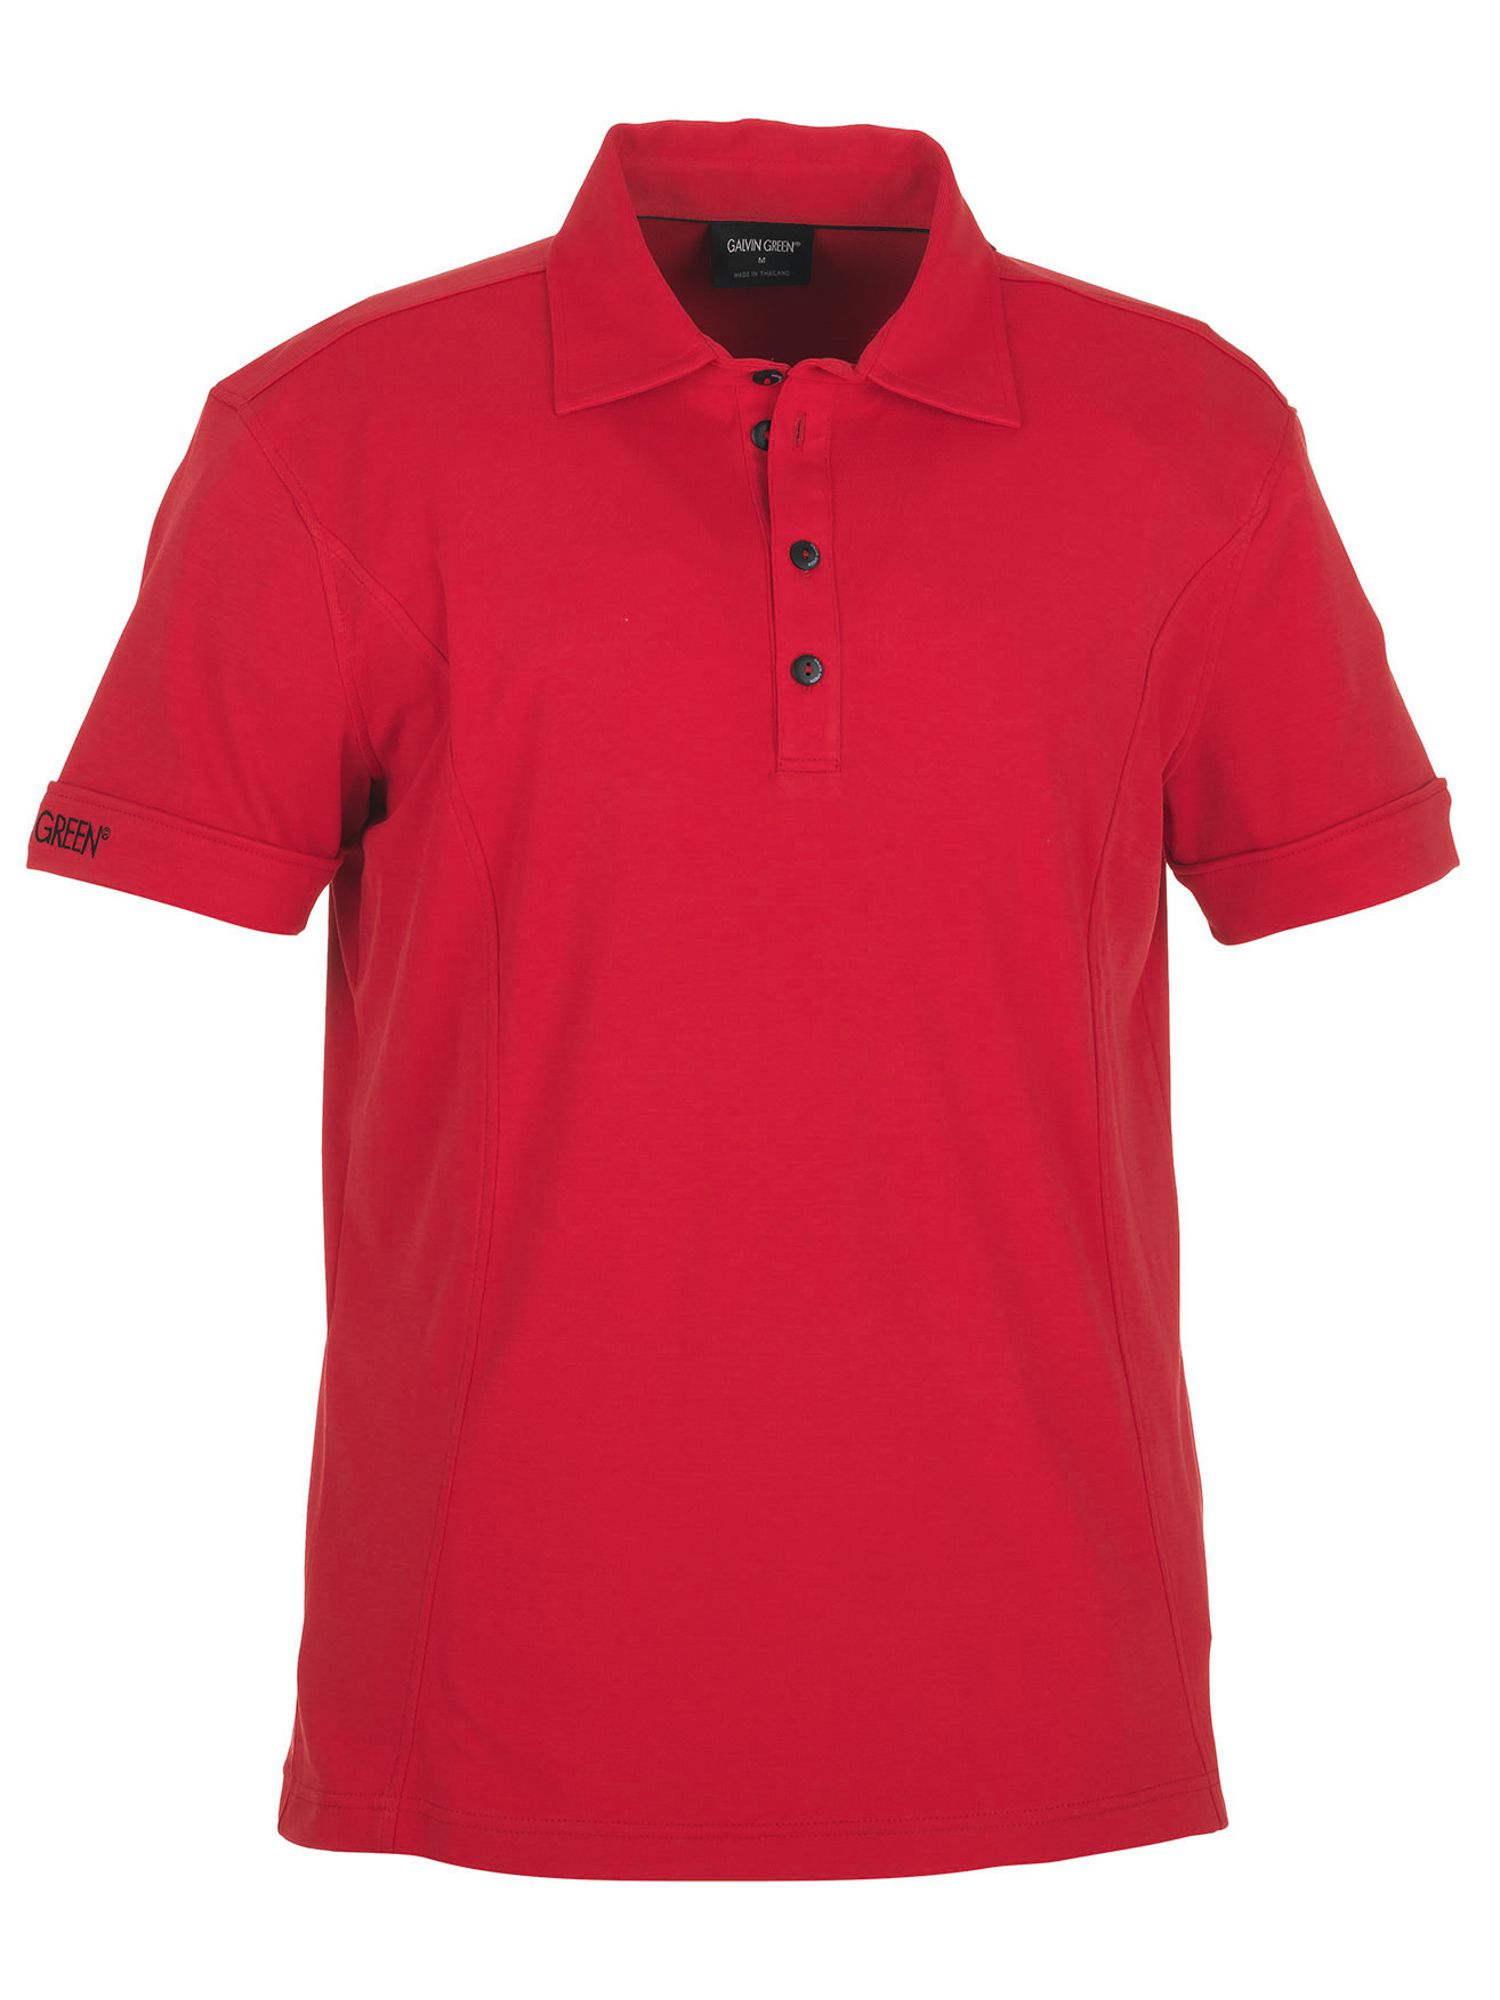 Mark polo shirt